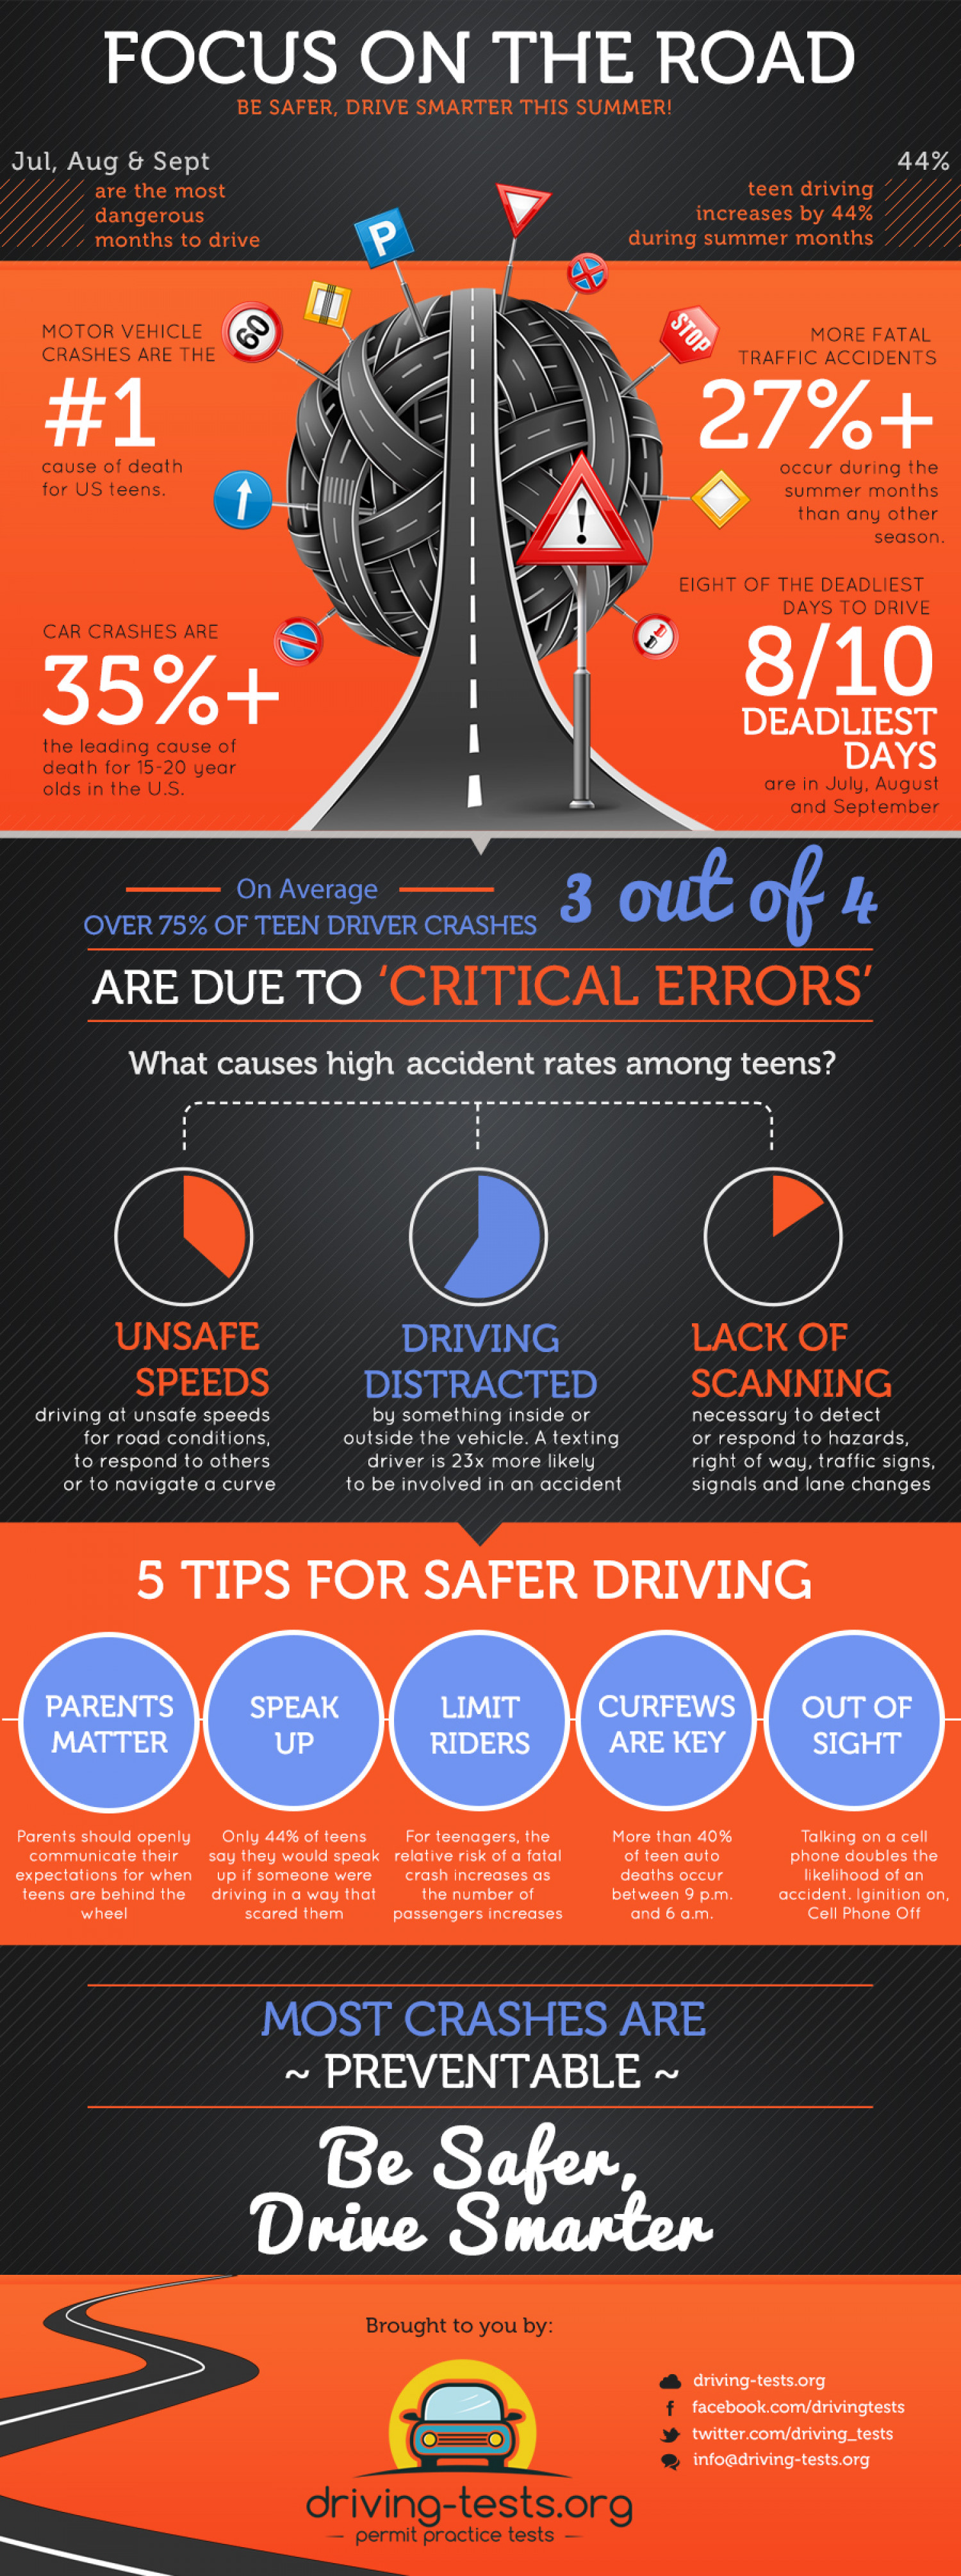 Focus on the Road Infographic